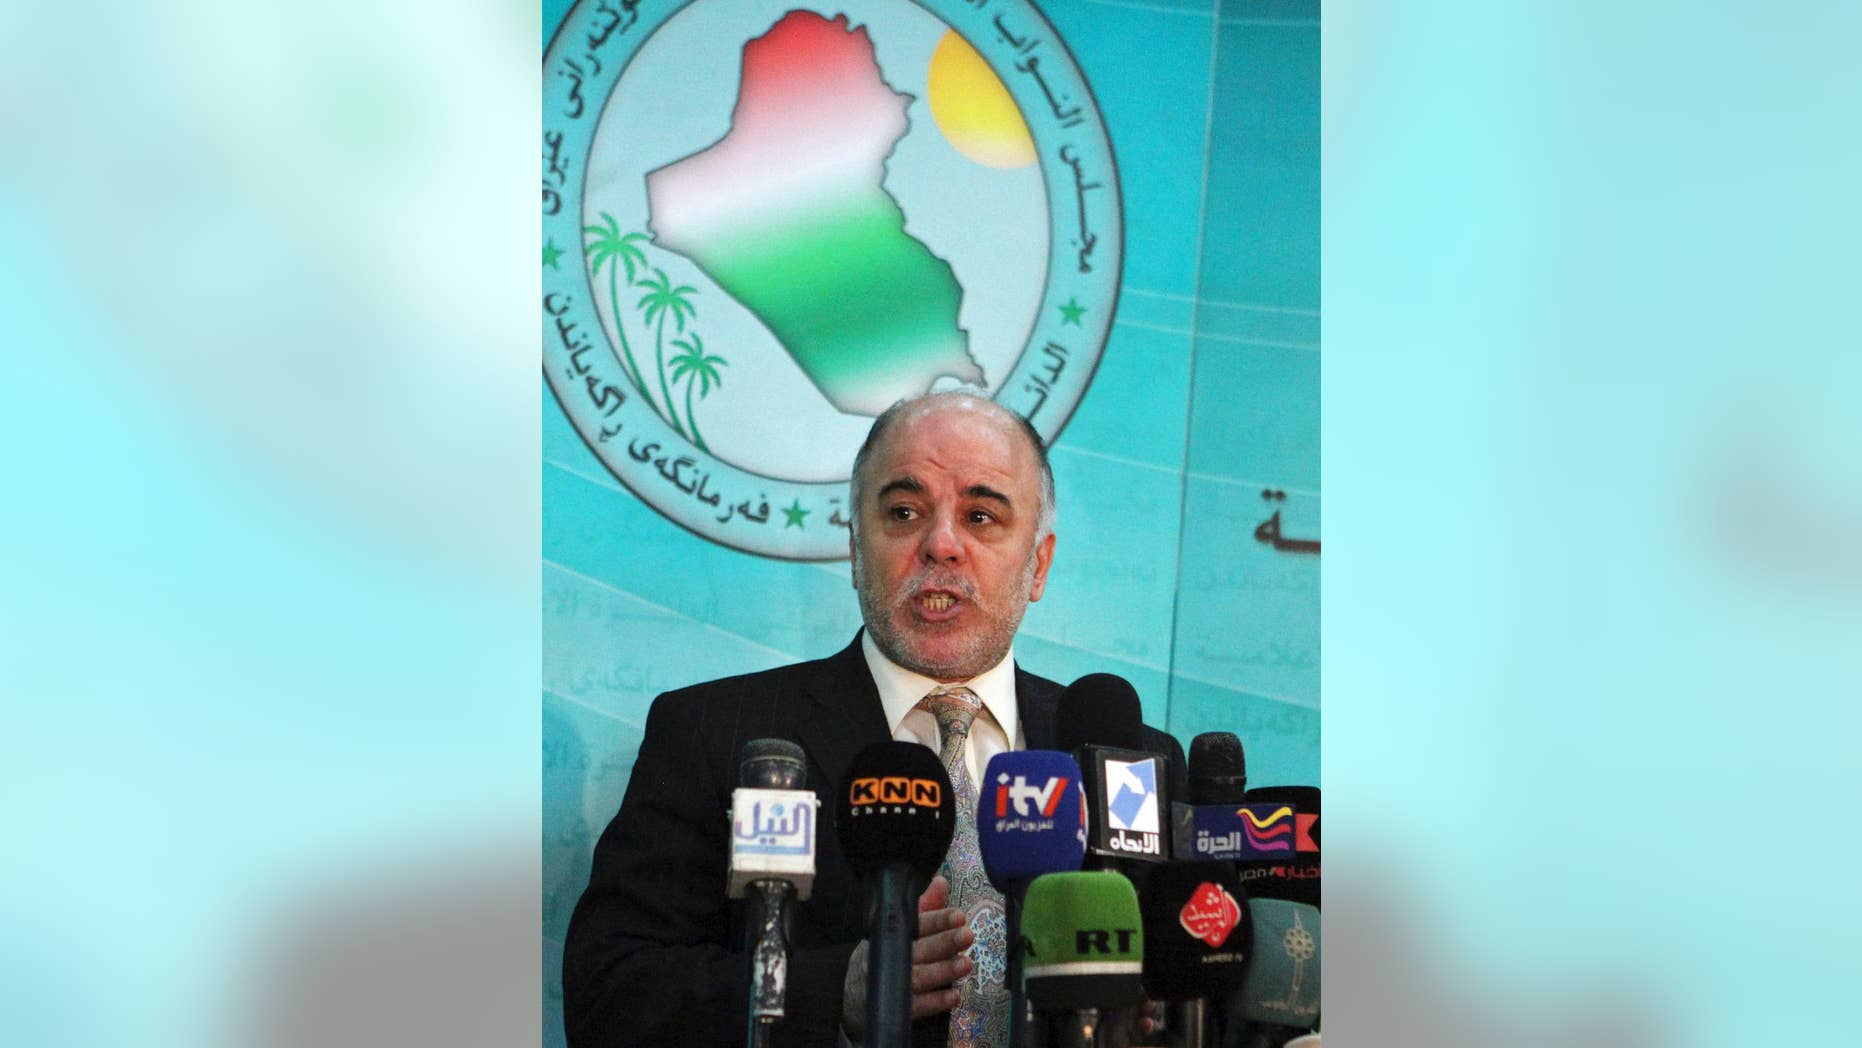 FILE - In this Saturday, Dec. 5, 2009 file photo, Shiite lawmaker Haider al-Abadi speaks to the press after an Iraqi Parliament session about the election law in Baghdad, Iraq. On Monday, Aug. 11, 2014, Iraq's largest coalition of Shiite political parties chose the Deputy Parliament Speaker Haider al-Ibadi to be its candidate to lead the government in a major defeat for incumbent Prime Minister Nouri al-Maliki just hours after he declared himself the rightful candidate and put troops on the street. Critics say the Shiite al-Maliki contributed to the crisis by monopolizing power and pursuing a sectarian agenda that alienated the country's Sunni and Kurdish minorities. (AP Photo/Karim Kadim, File)